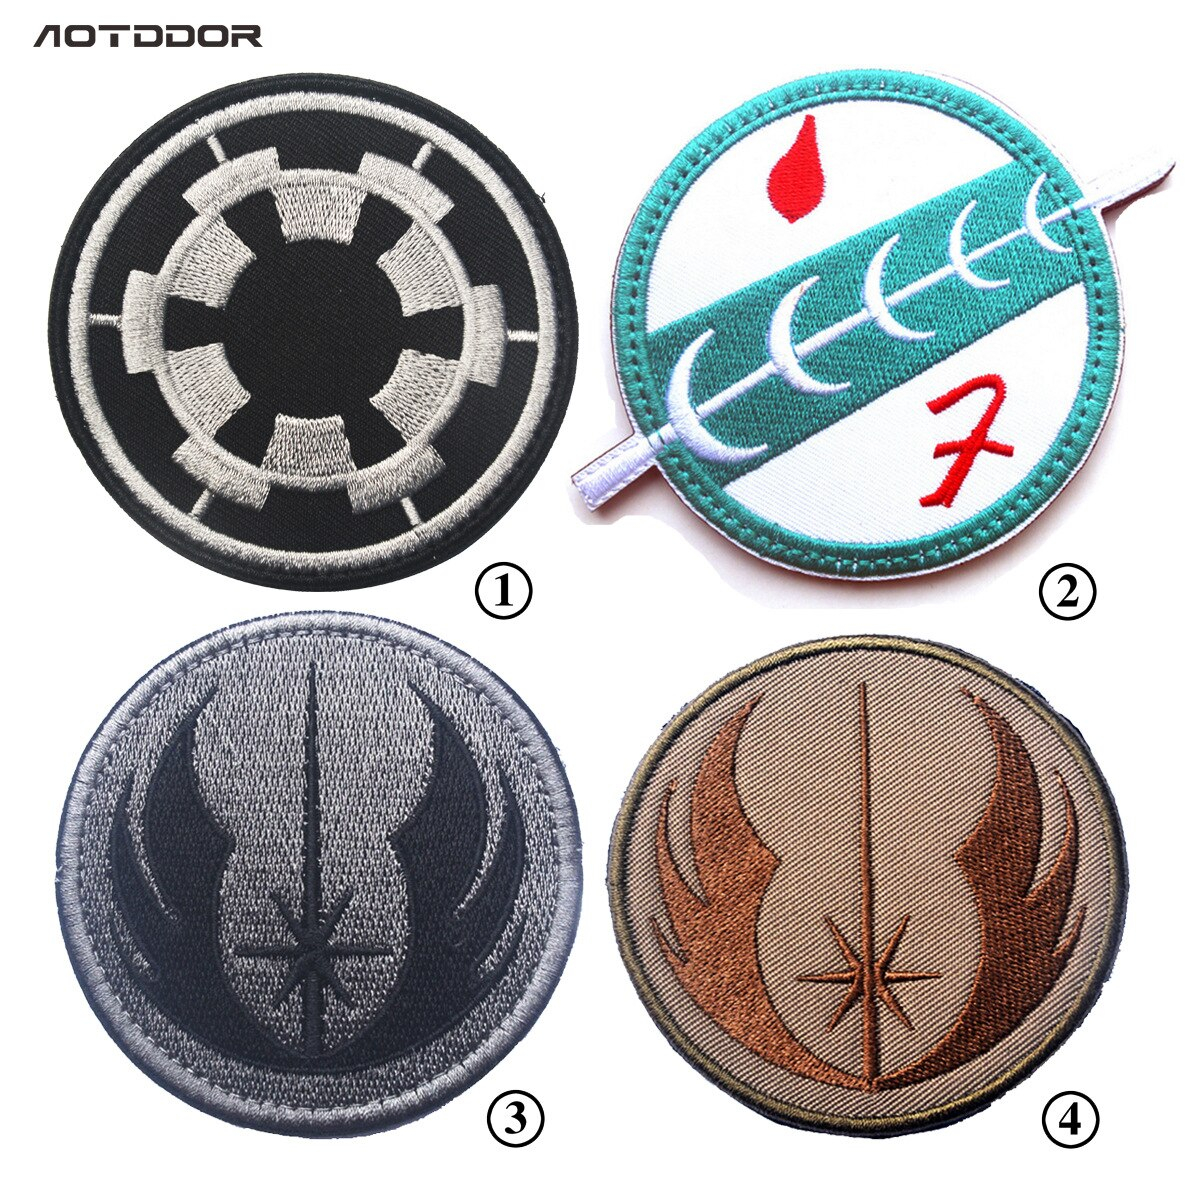 Star Wars Embroidery Pattern Embroidery Armband Star Wars Jedi Order Mandalorian Wave Bounty Hunter Boba Fett Emblem Patches